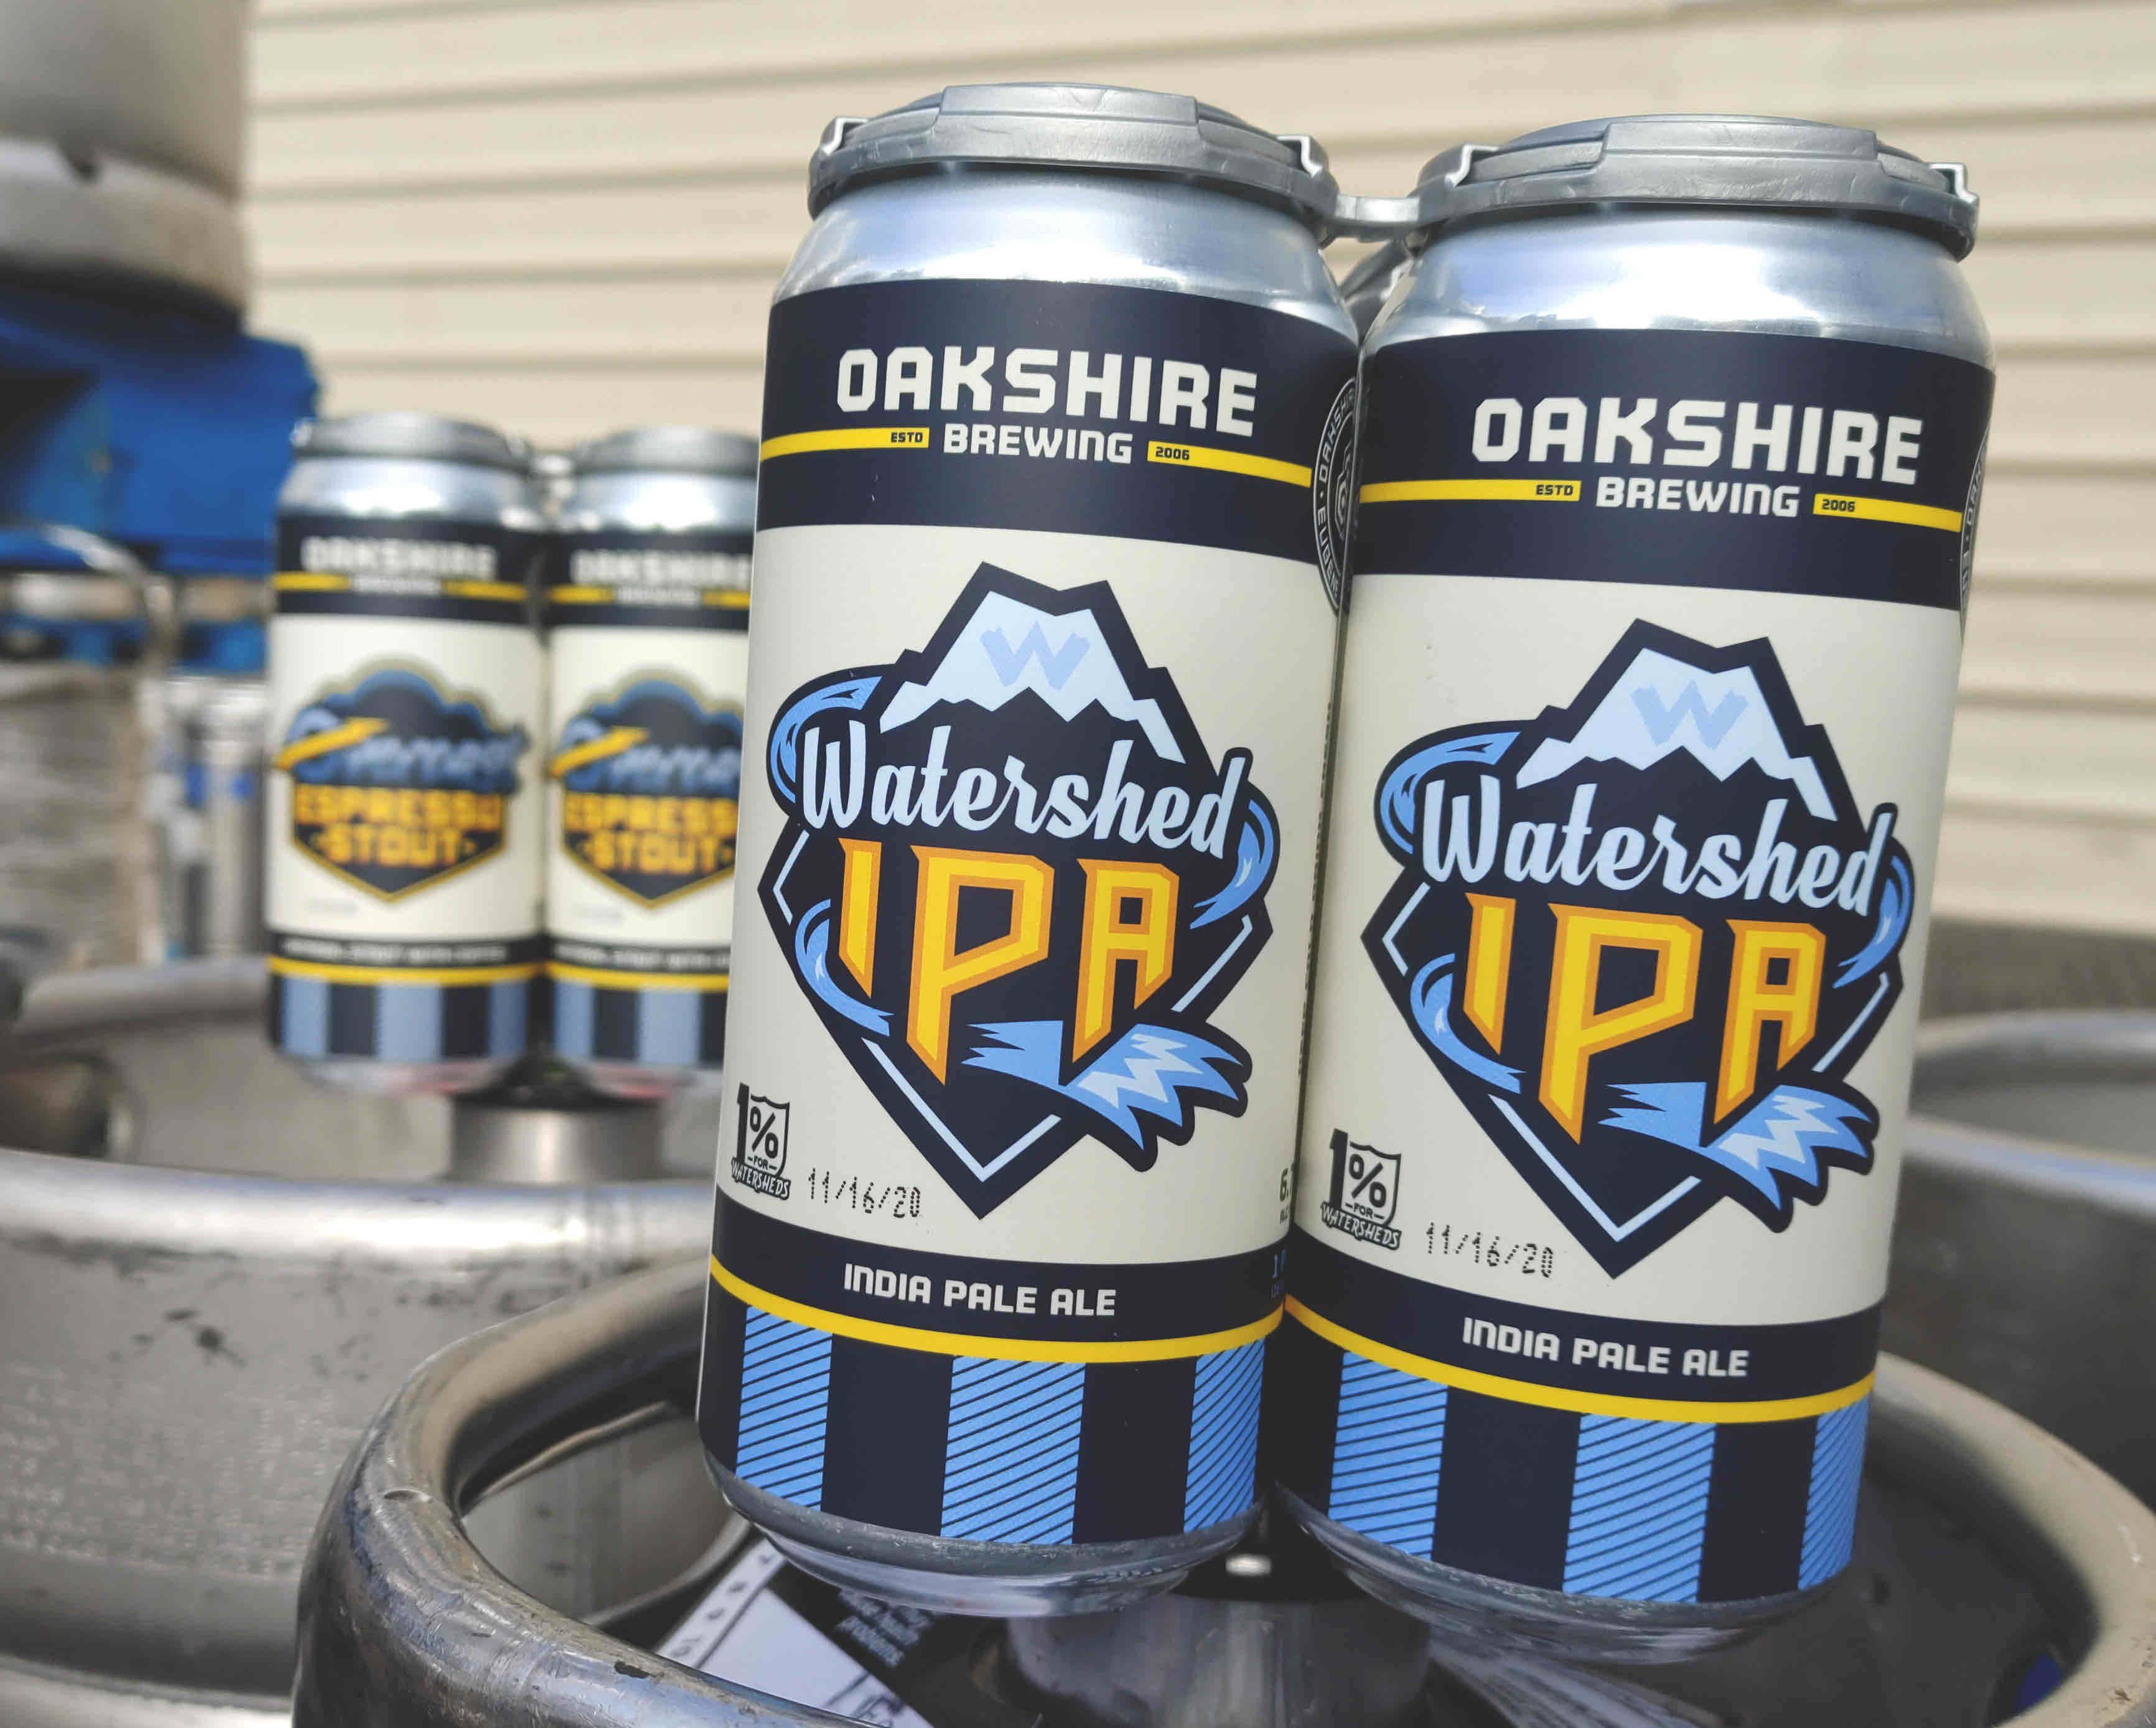 image of Watershed IPA in new 16oz cans courtesy of Oakshire Brewing